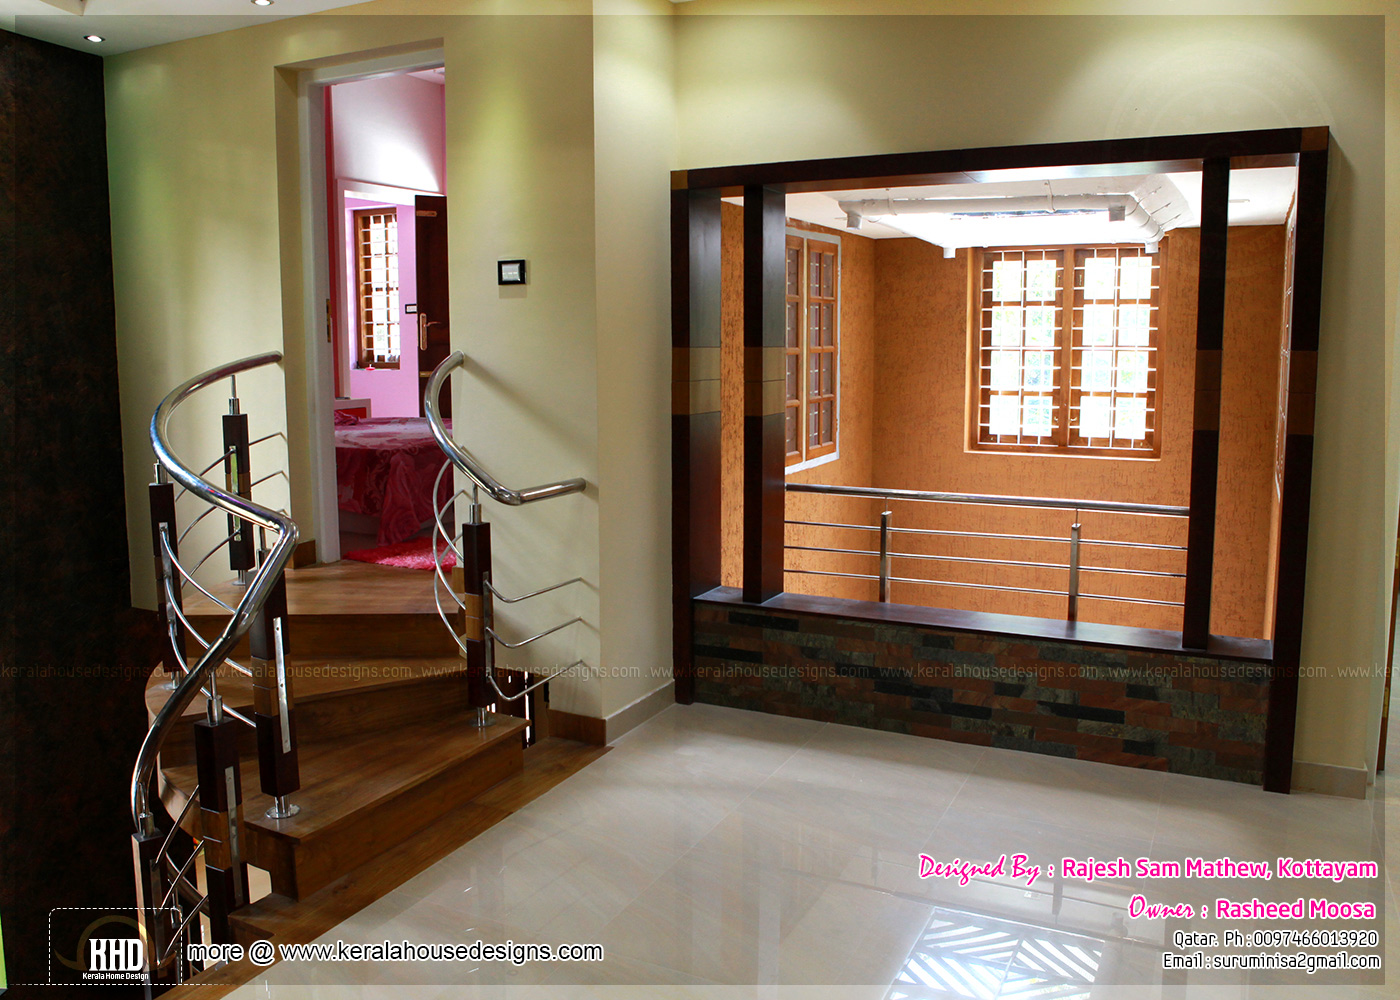 Kerala interior design with photos kerala home design for Home interior design photo gallery